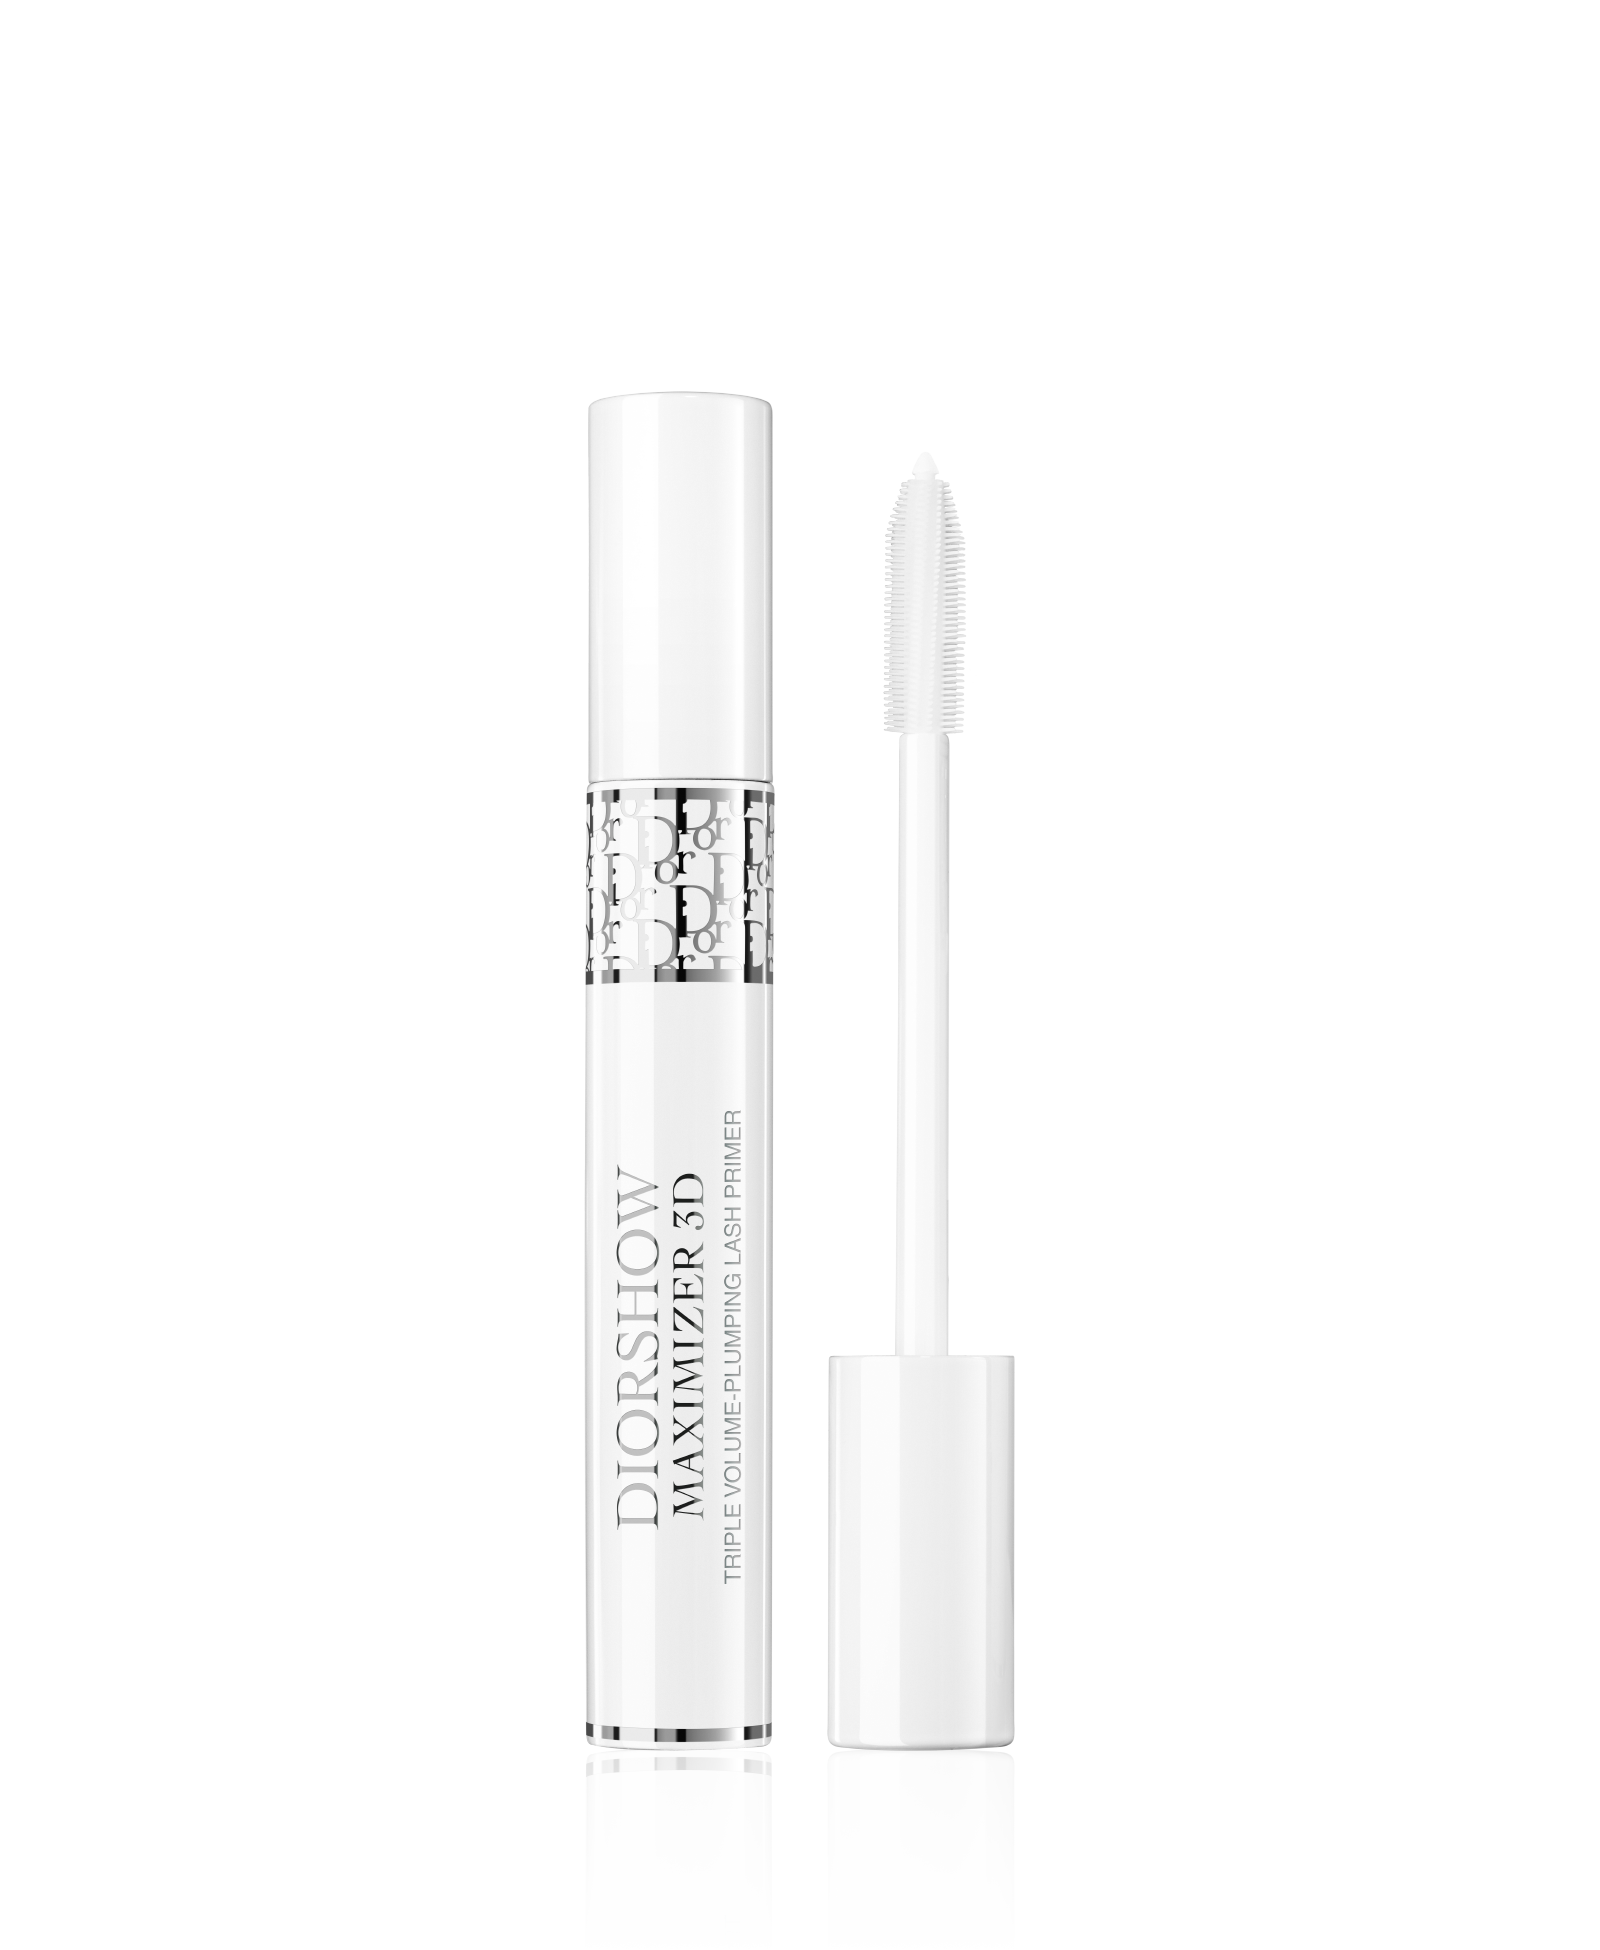 6a4bf6cda8e Discover DIORSHOW MAXIMIZER 3D by Christian Dior available in Dior official  online store. Videos, TRIPLE VOLUME* PLUMPING LASH PRIMER tutorials and  beauty ...